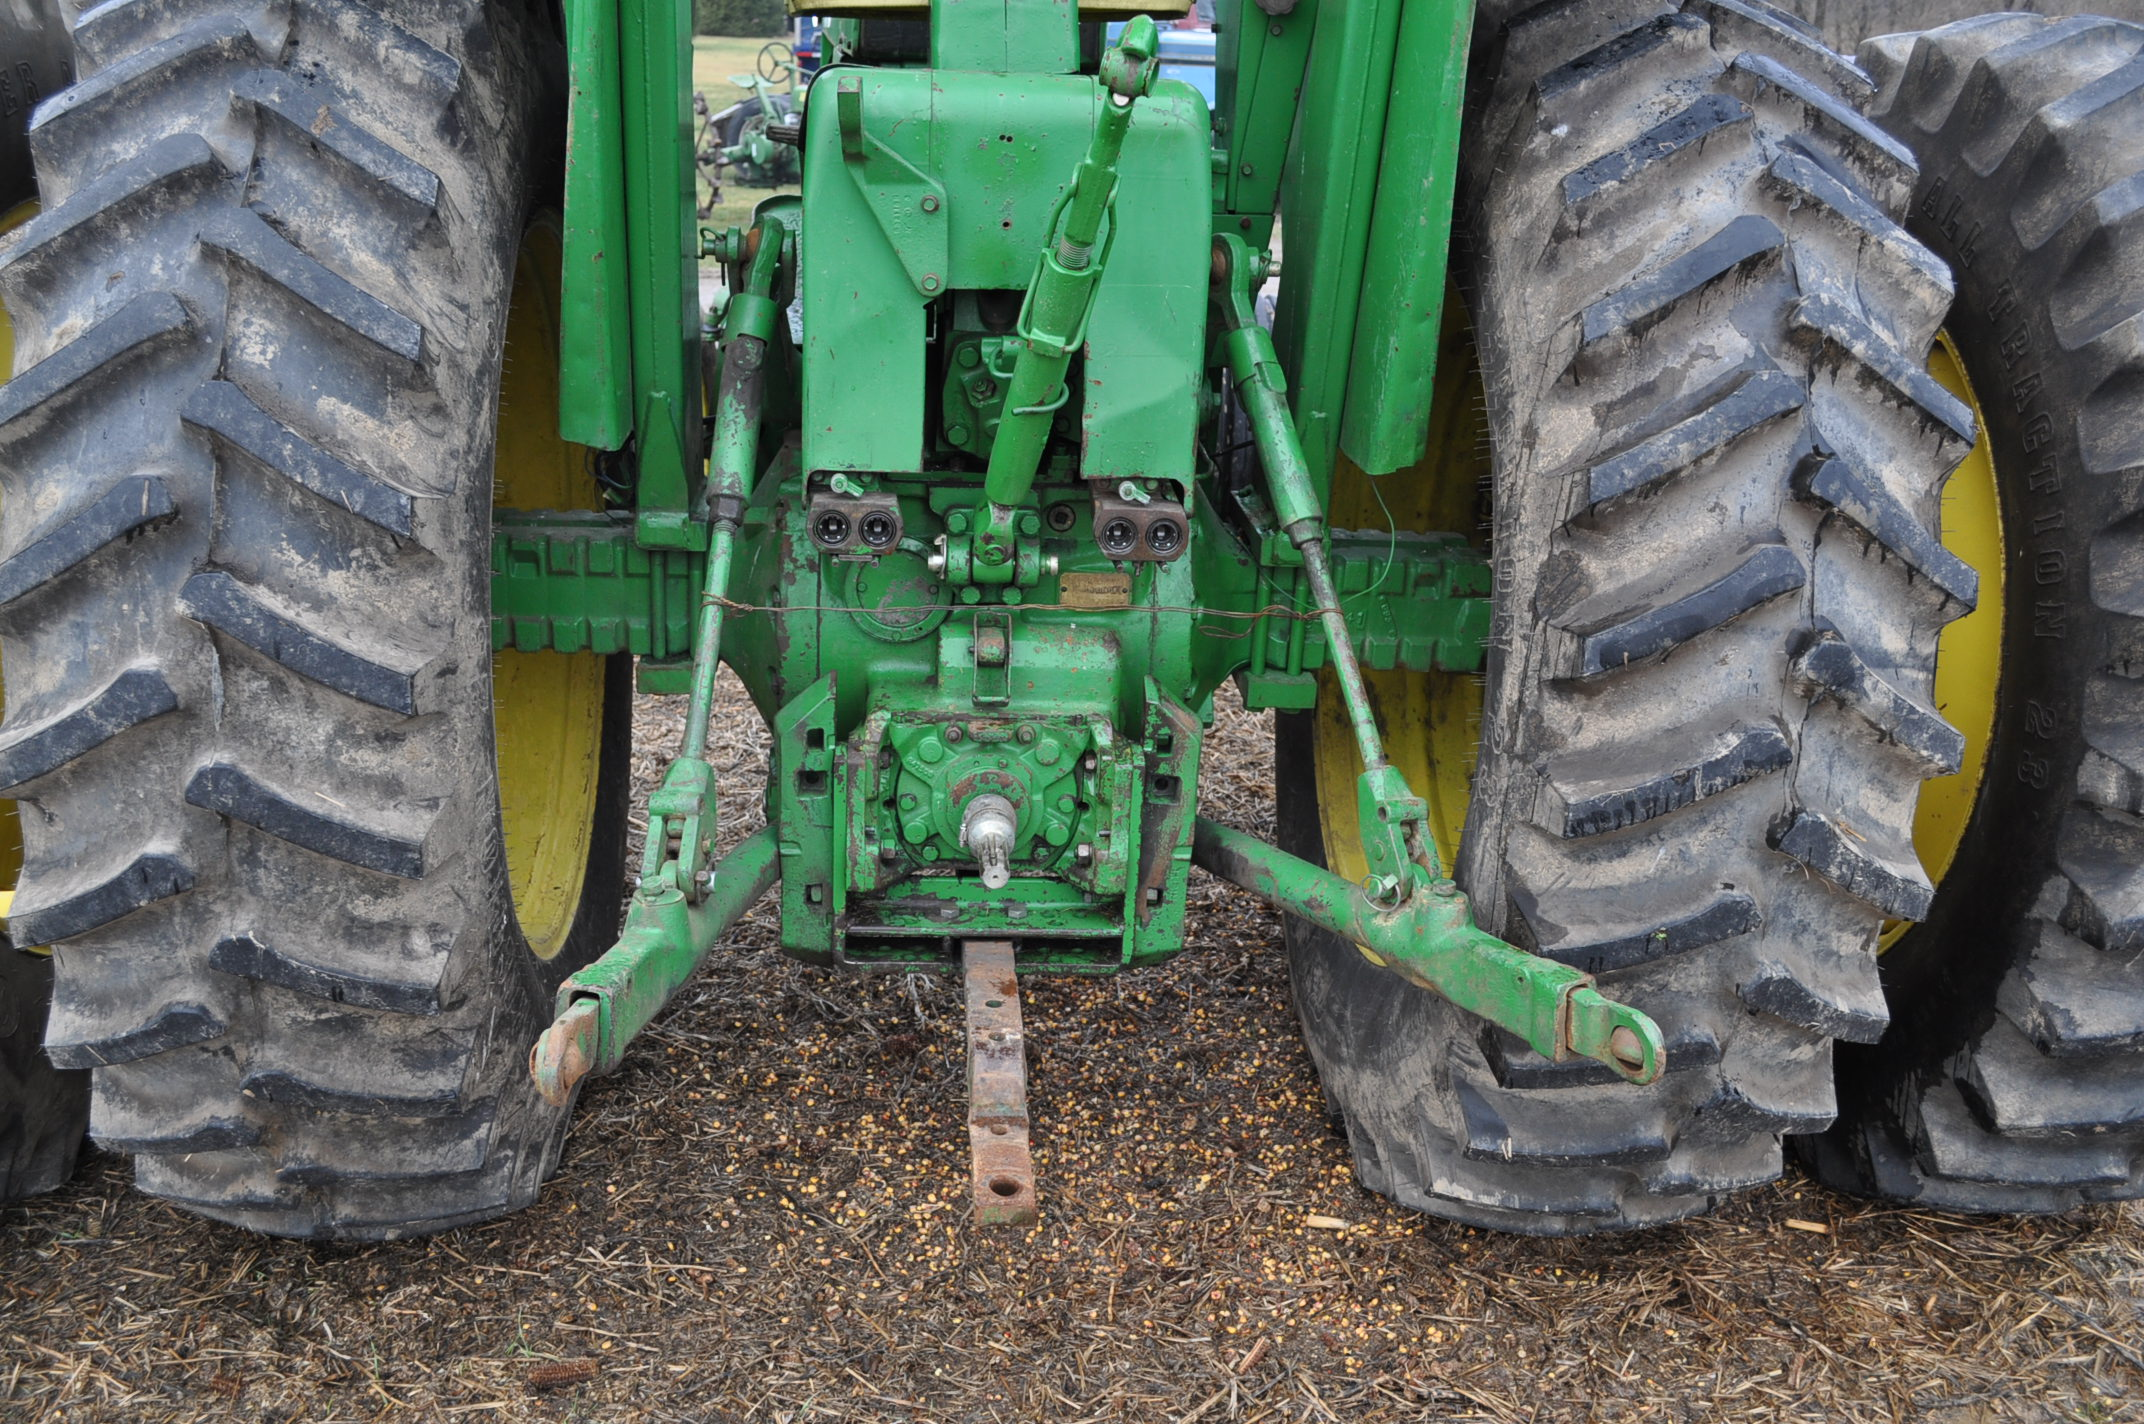 John Deere 4320 tractor, diesel, 18.4-38 duals, 10.00-16 wide front, Syncro, 2 hyd remotes, 540/1000 - Image 13 of 20